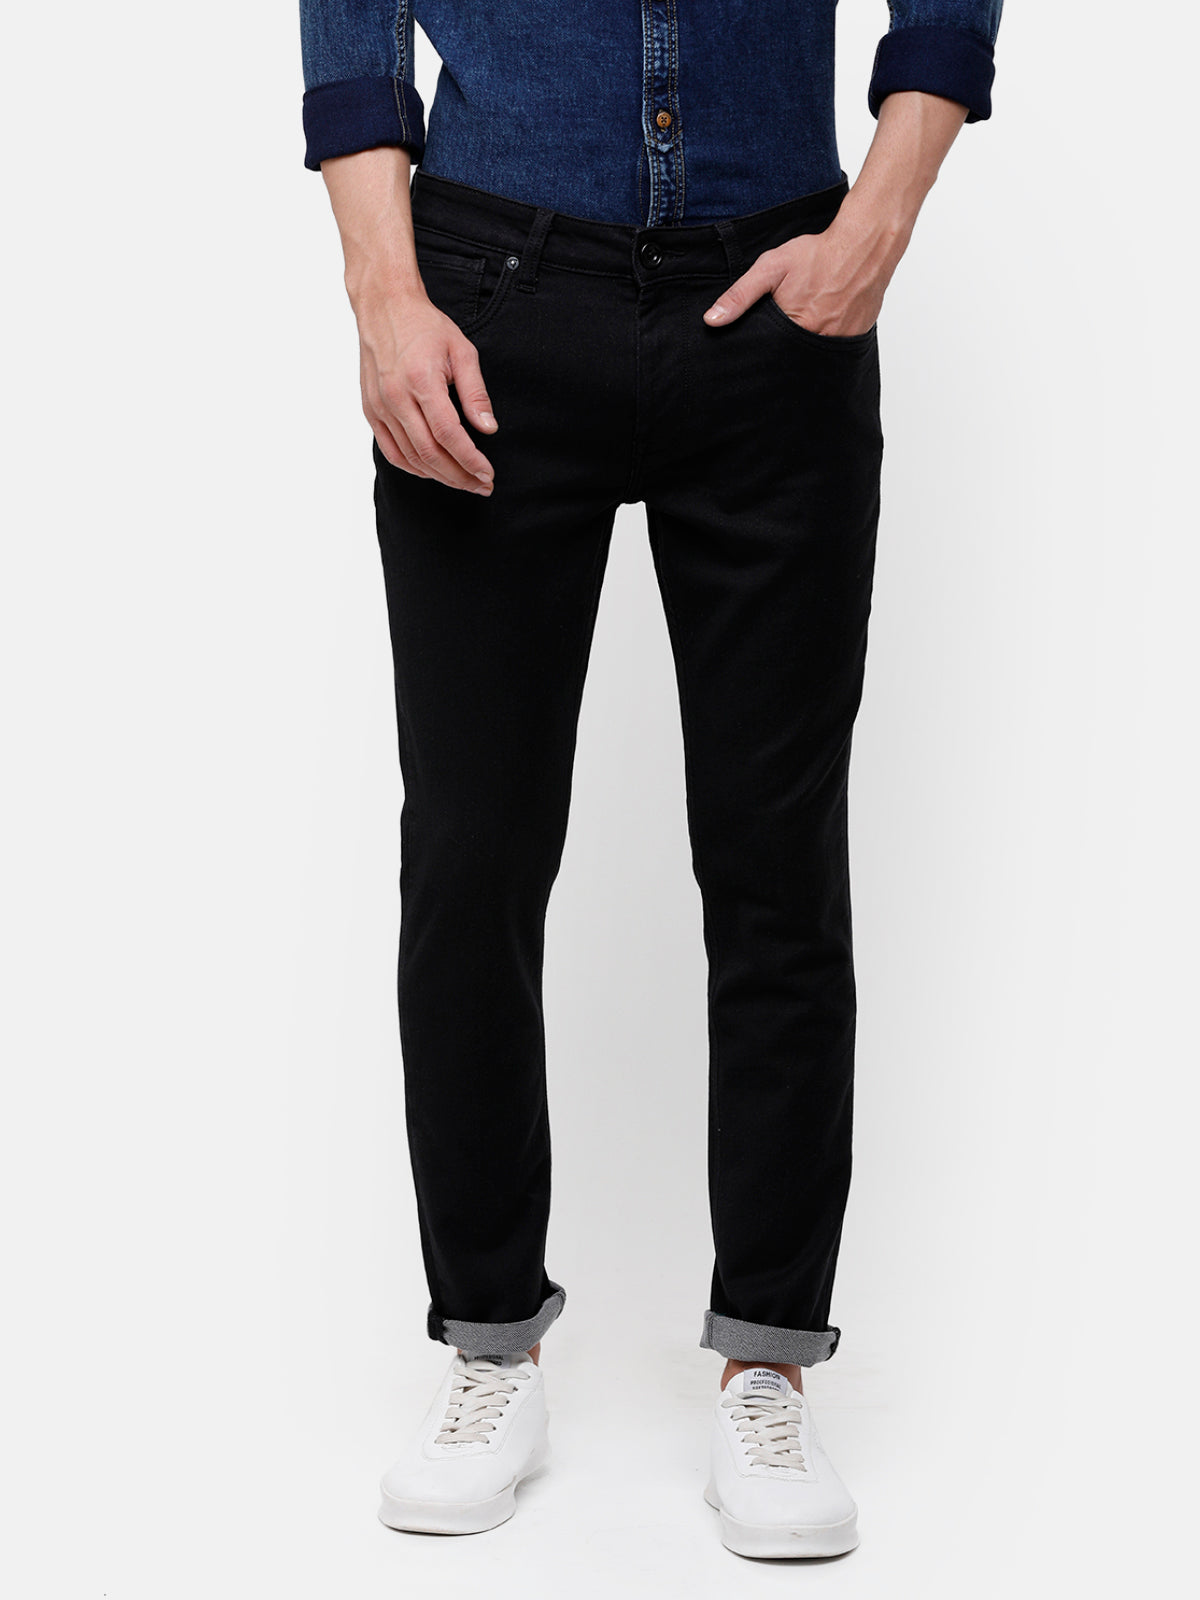 Men's Black Tapered Denim